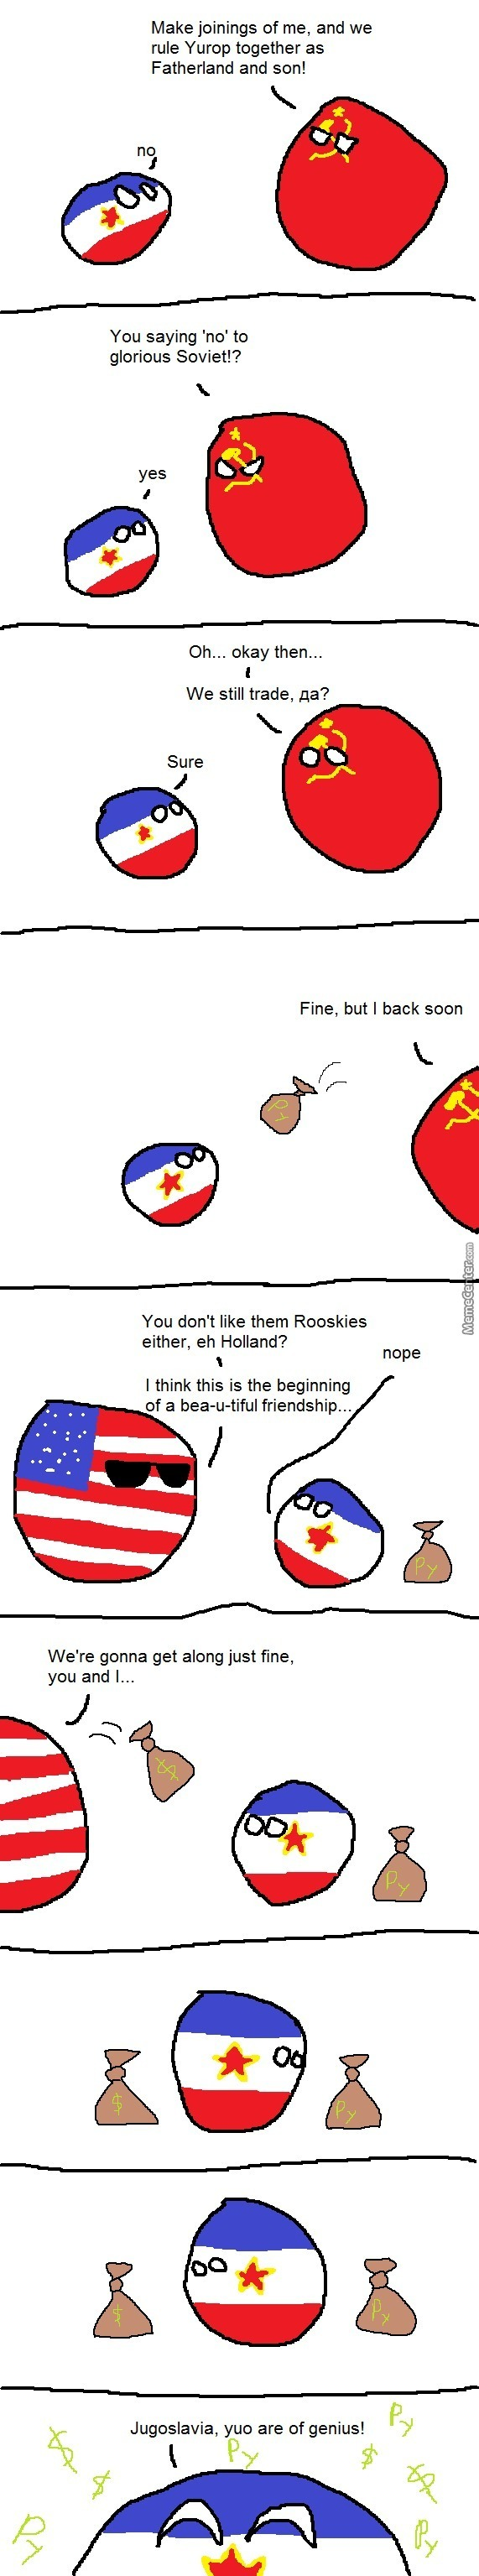 Yugoslavia In The Cold War